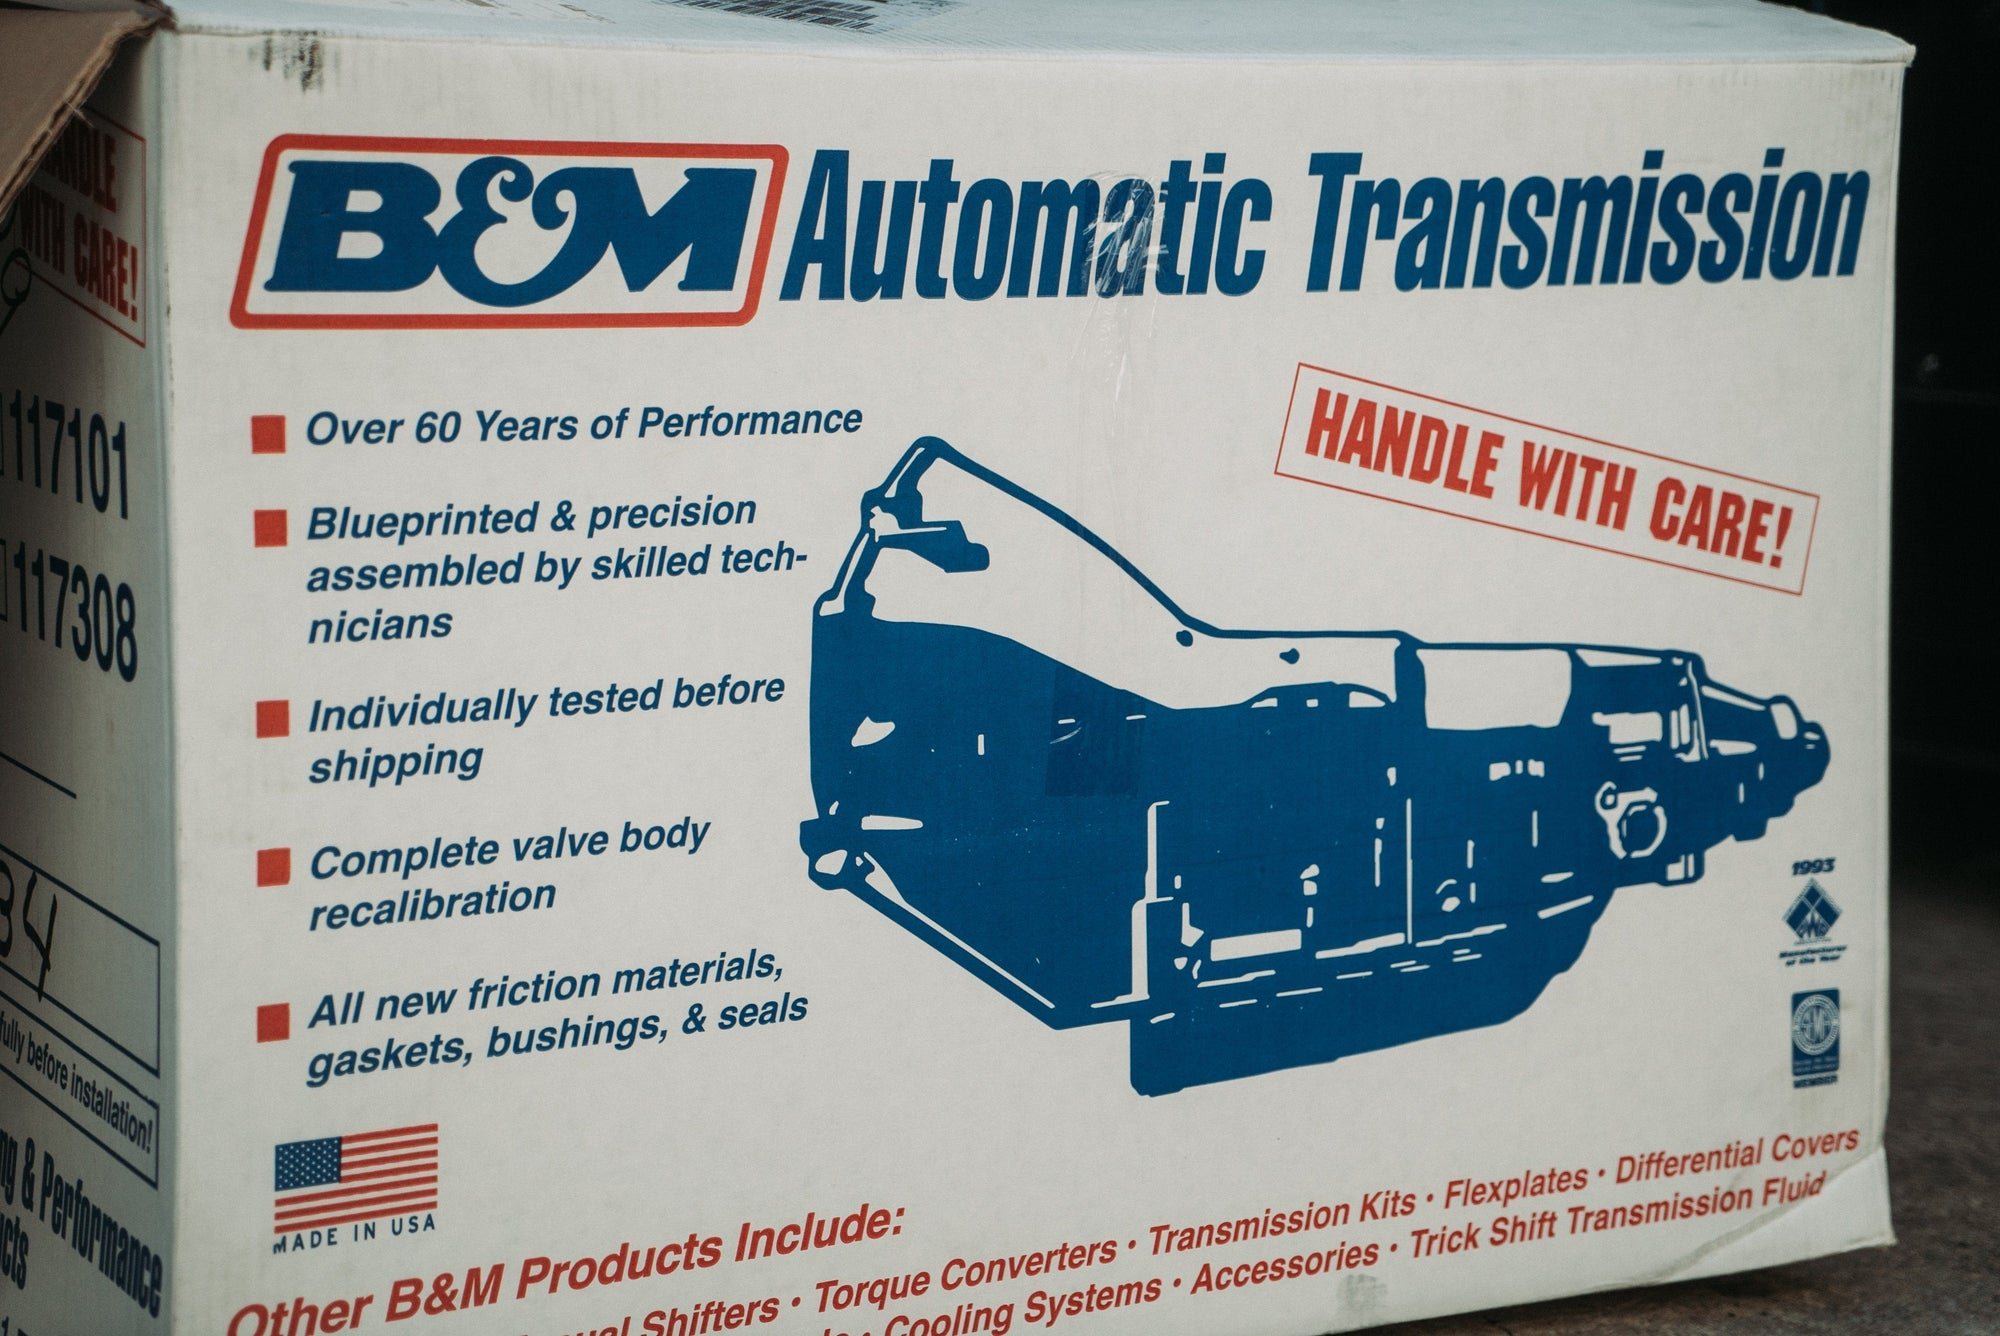 B&M Turbo 400 FAF Automotive